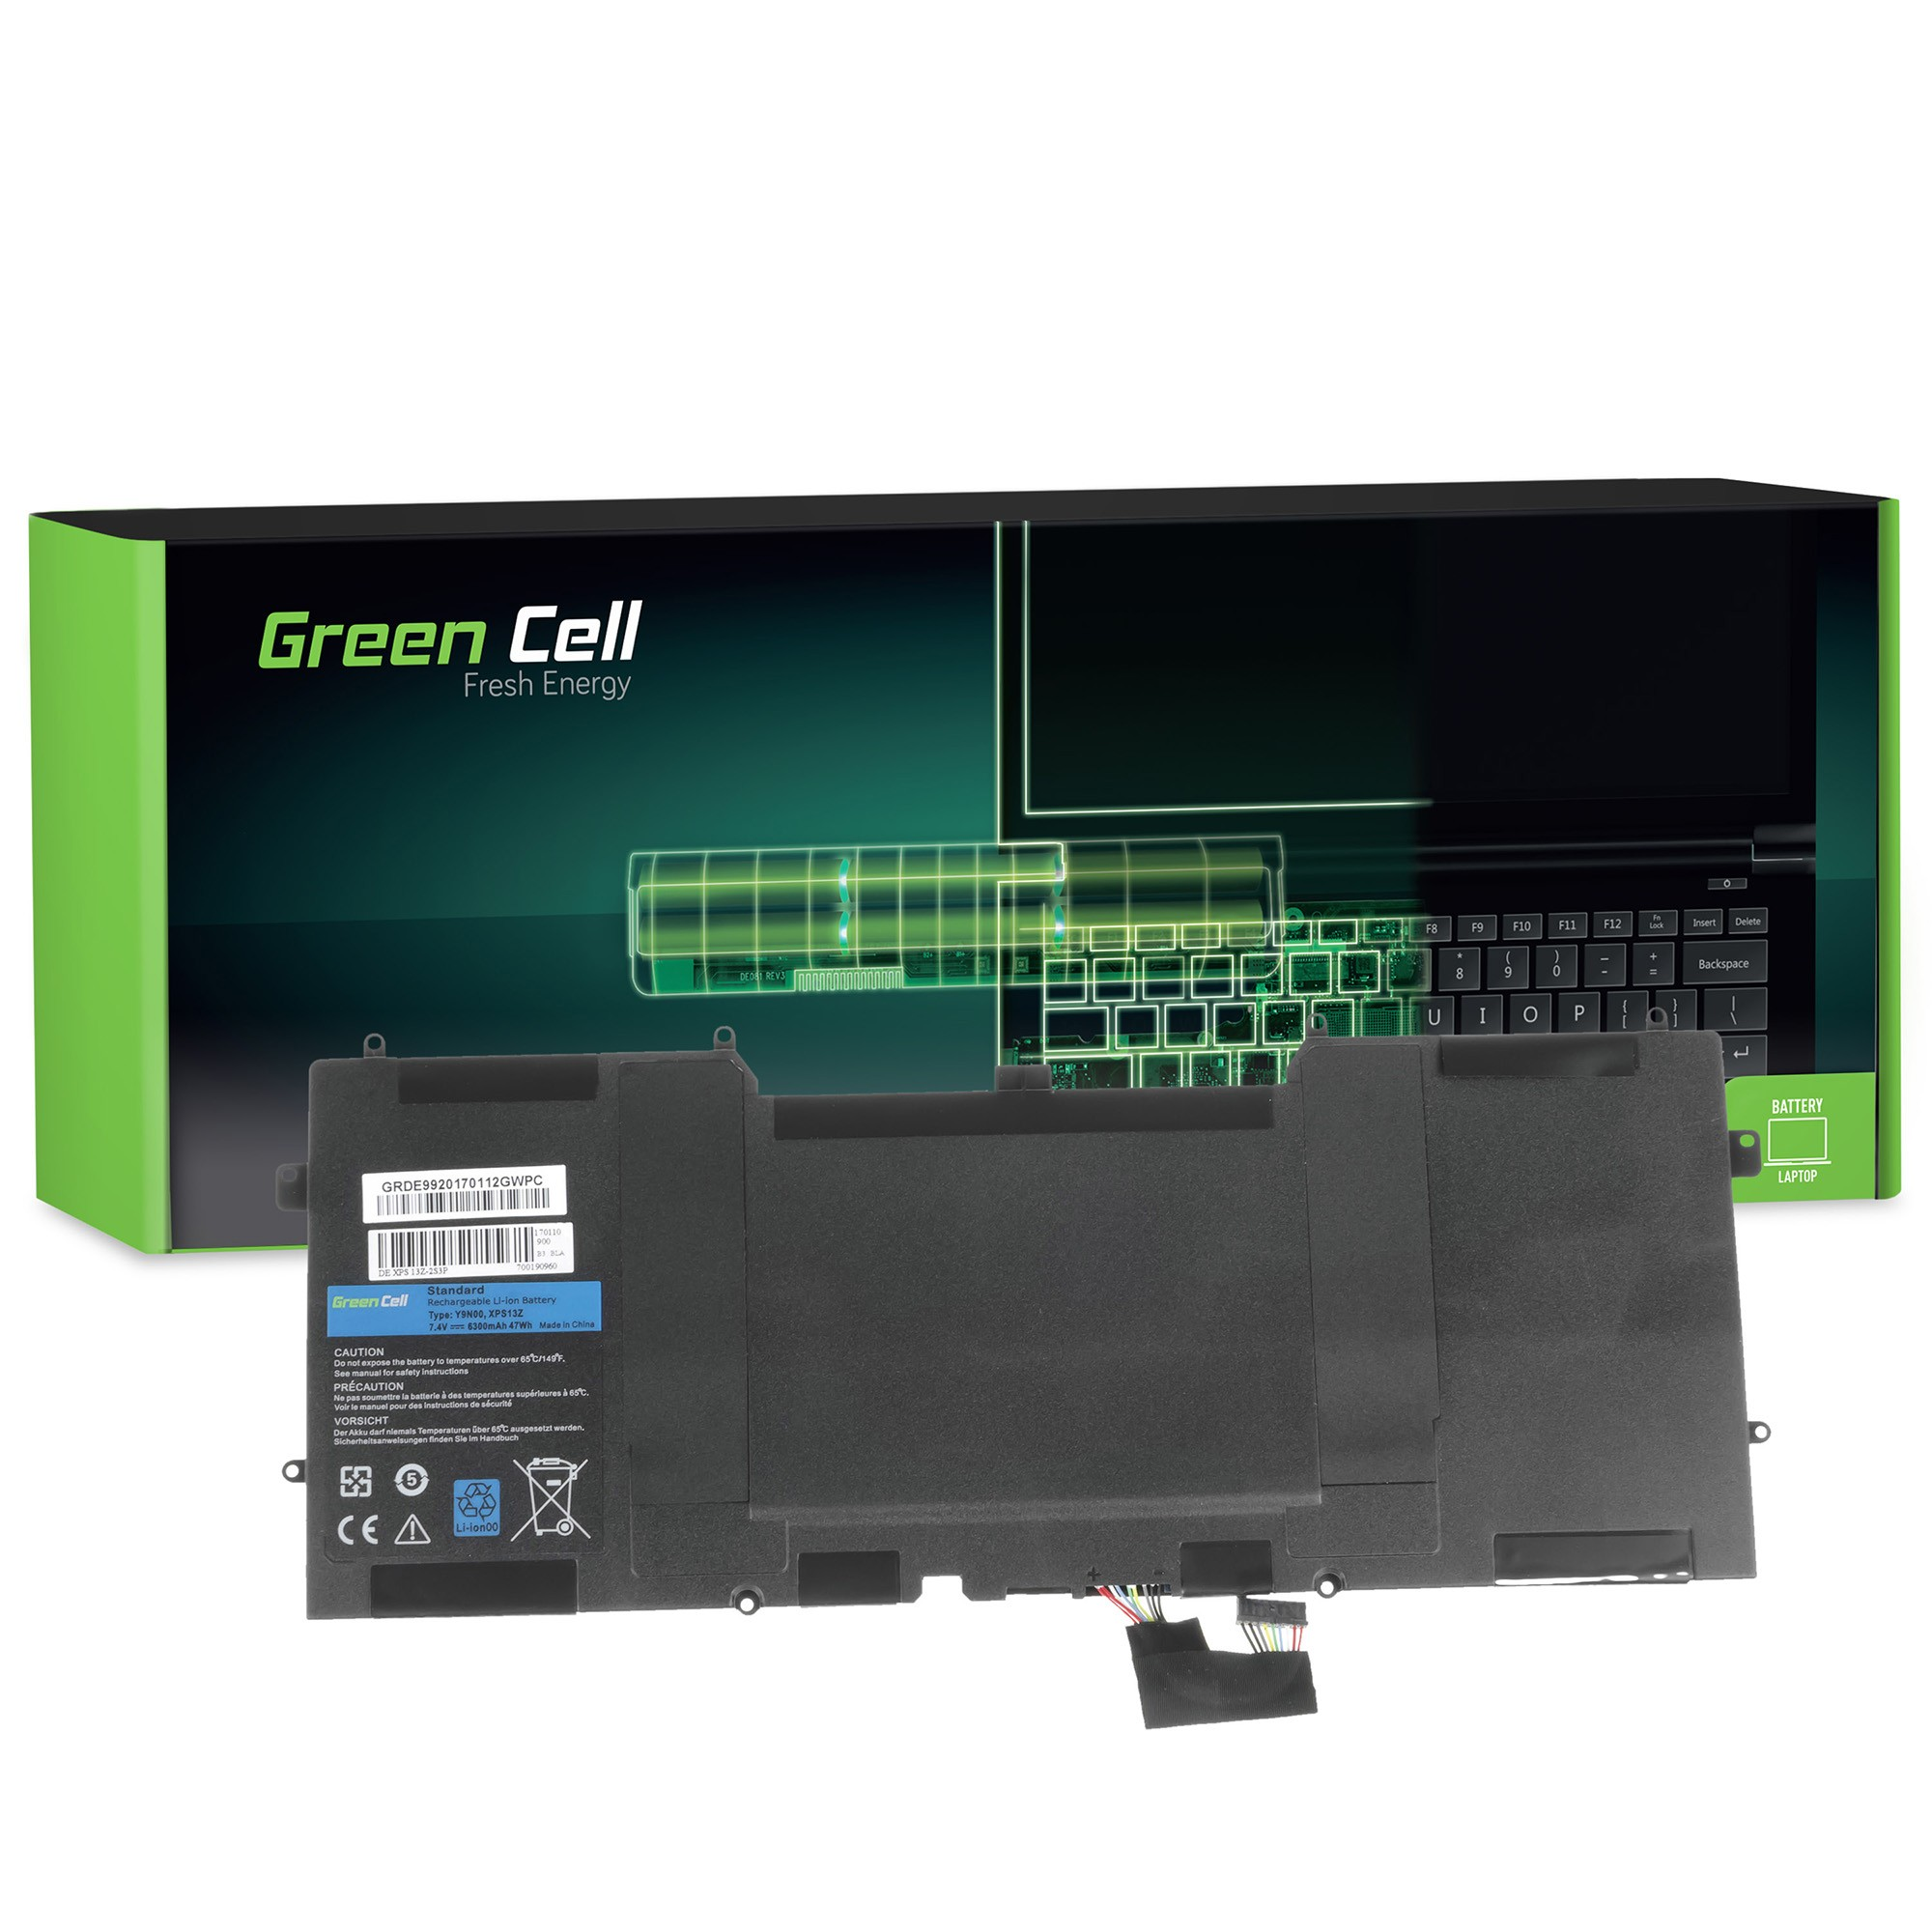 Pleasing Green Cell Pro Laptop Akku Y9N00 Fur Dell Xps 13 9333 Home Interior And Landscaping Mentranervesignezvosmurscom